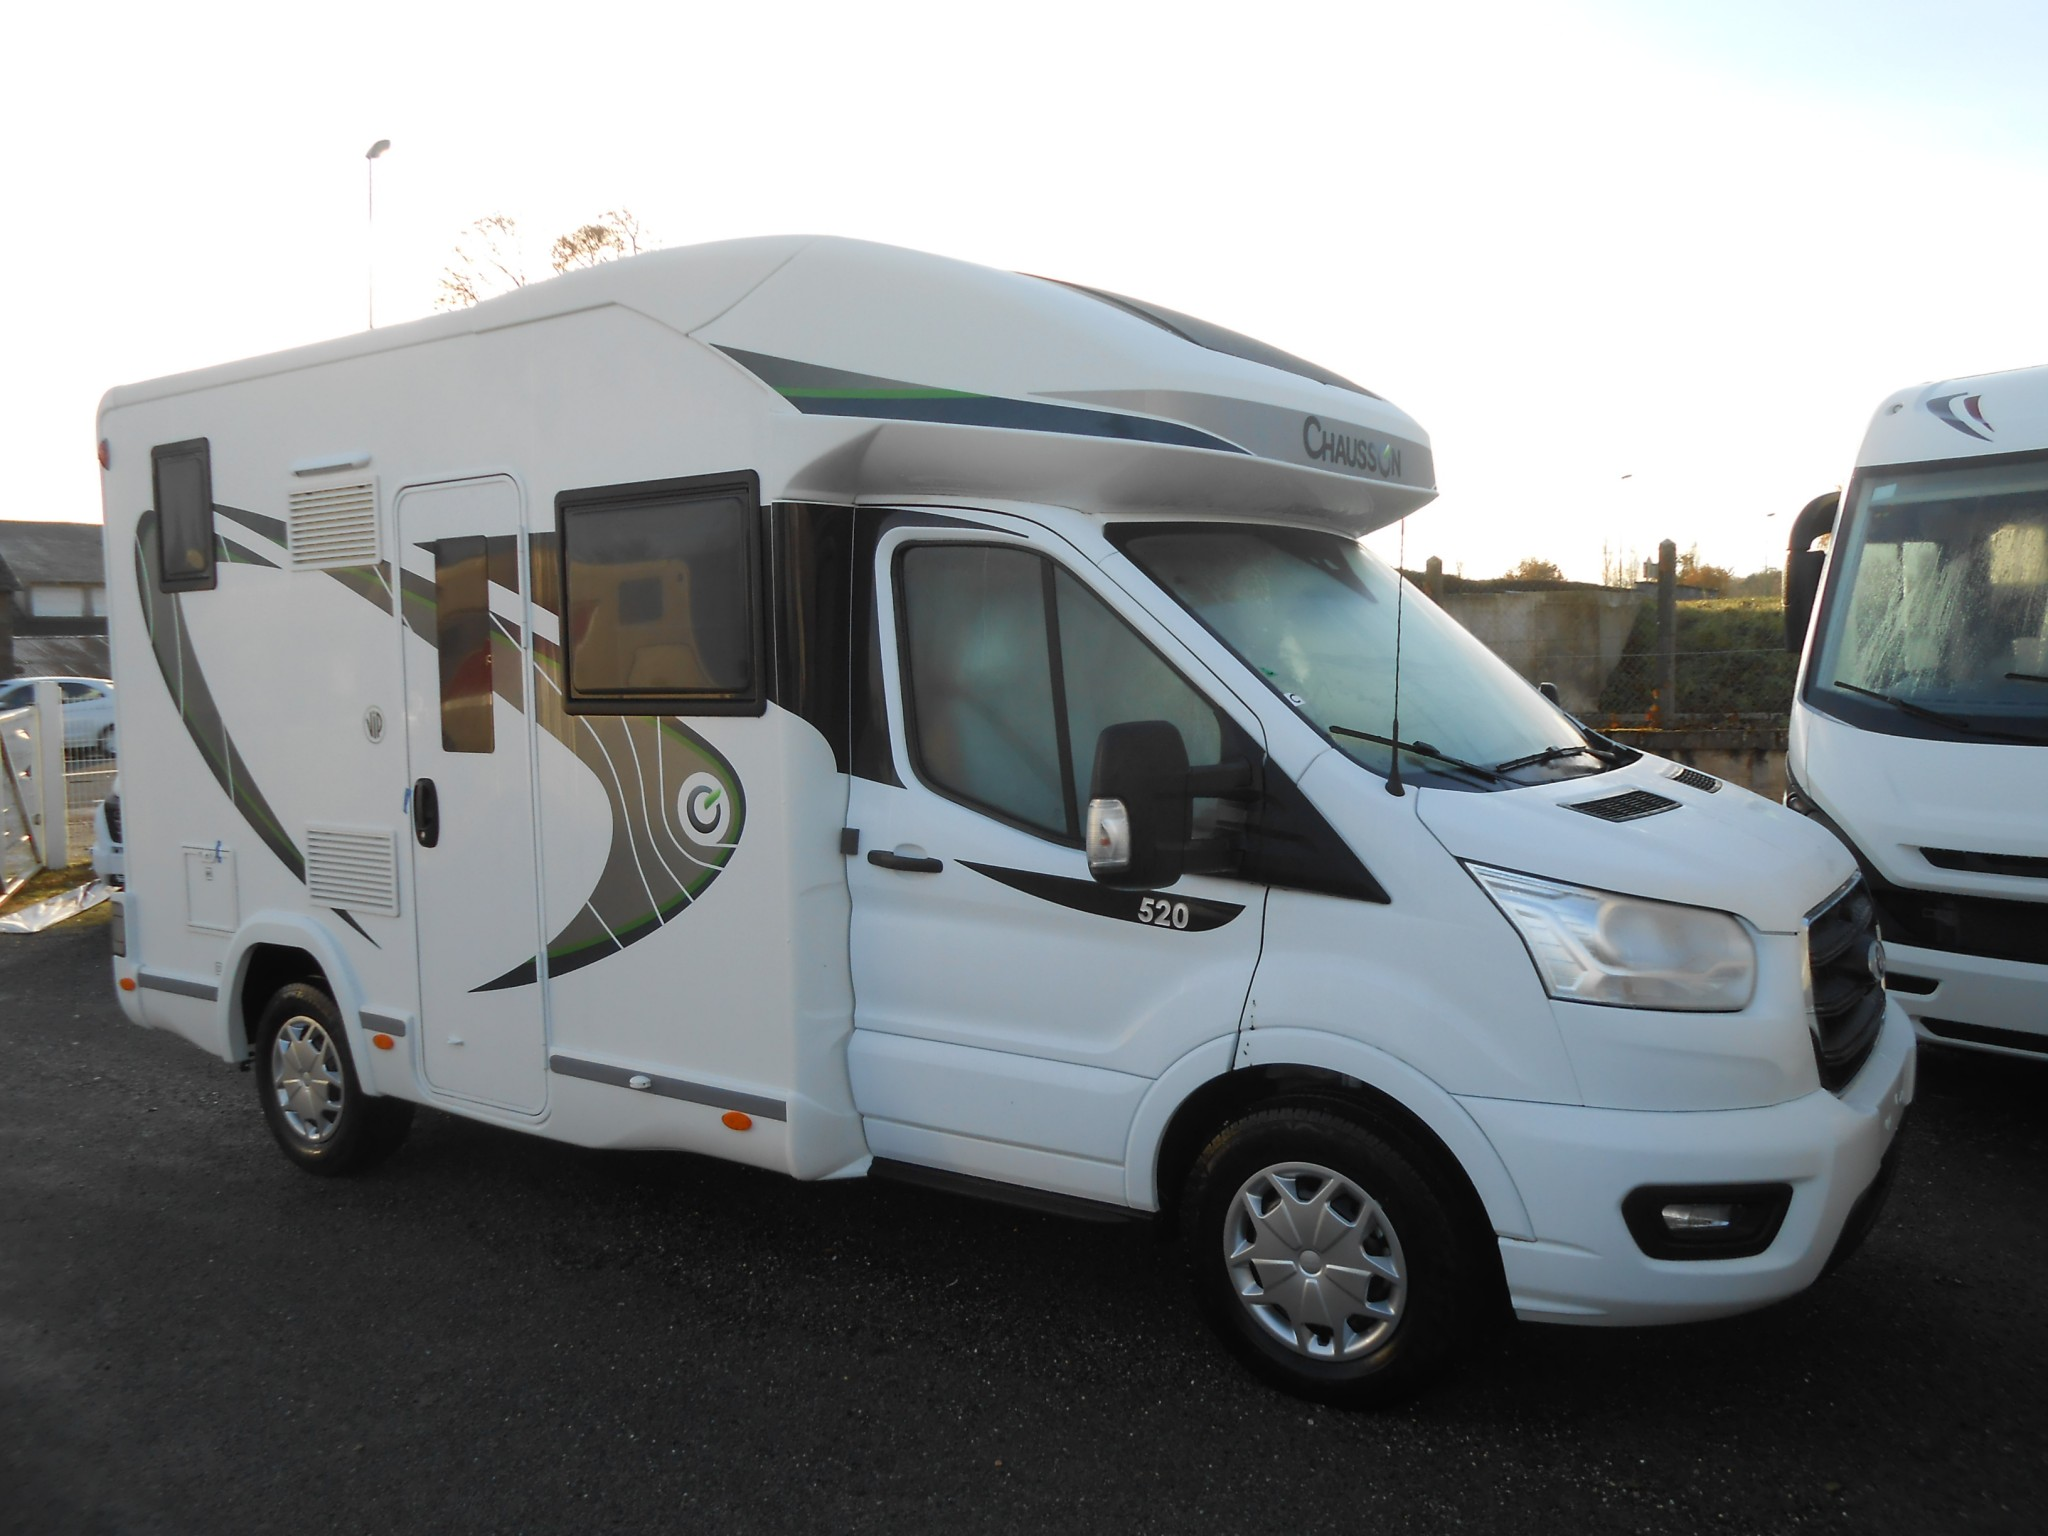 Camping-car CHAUSSON 520